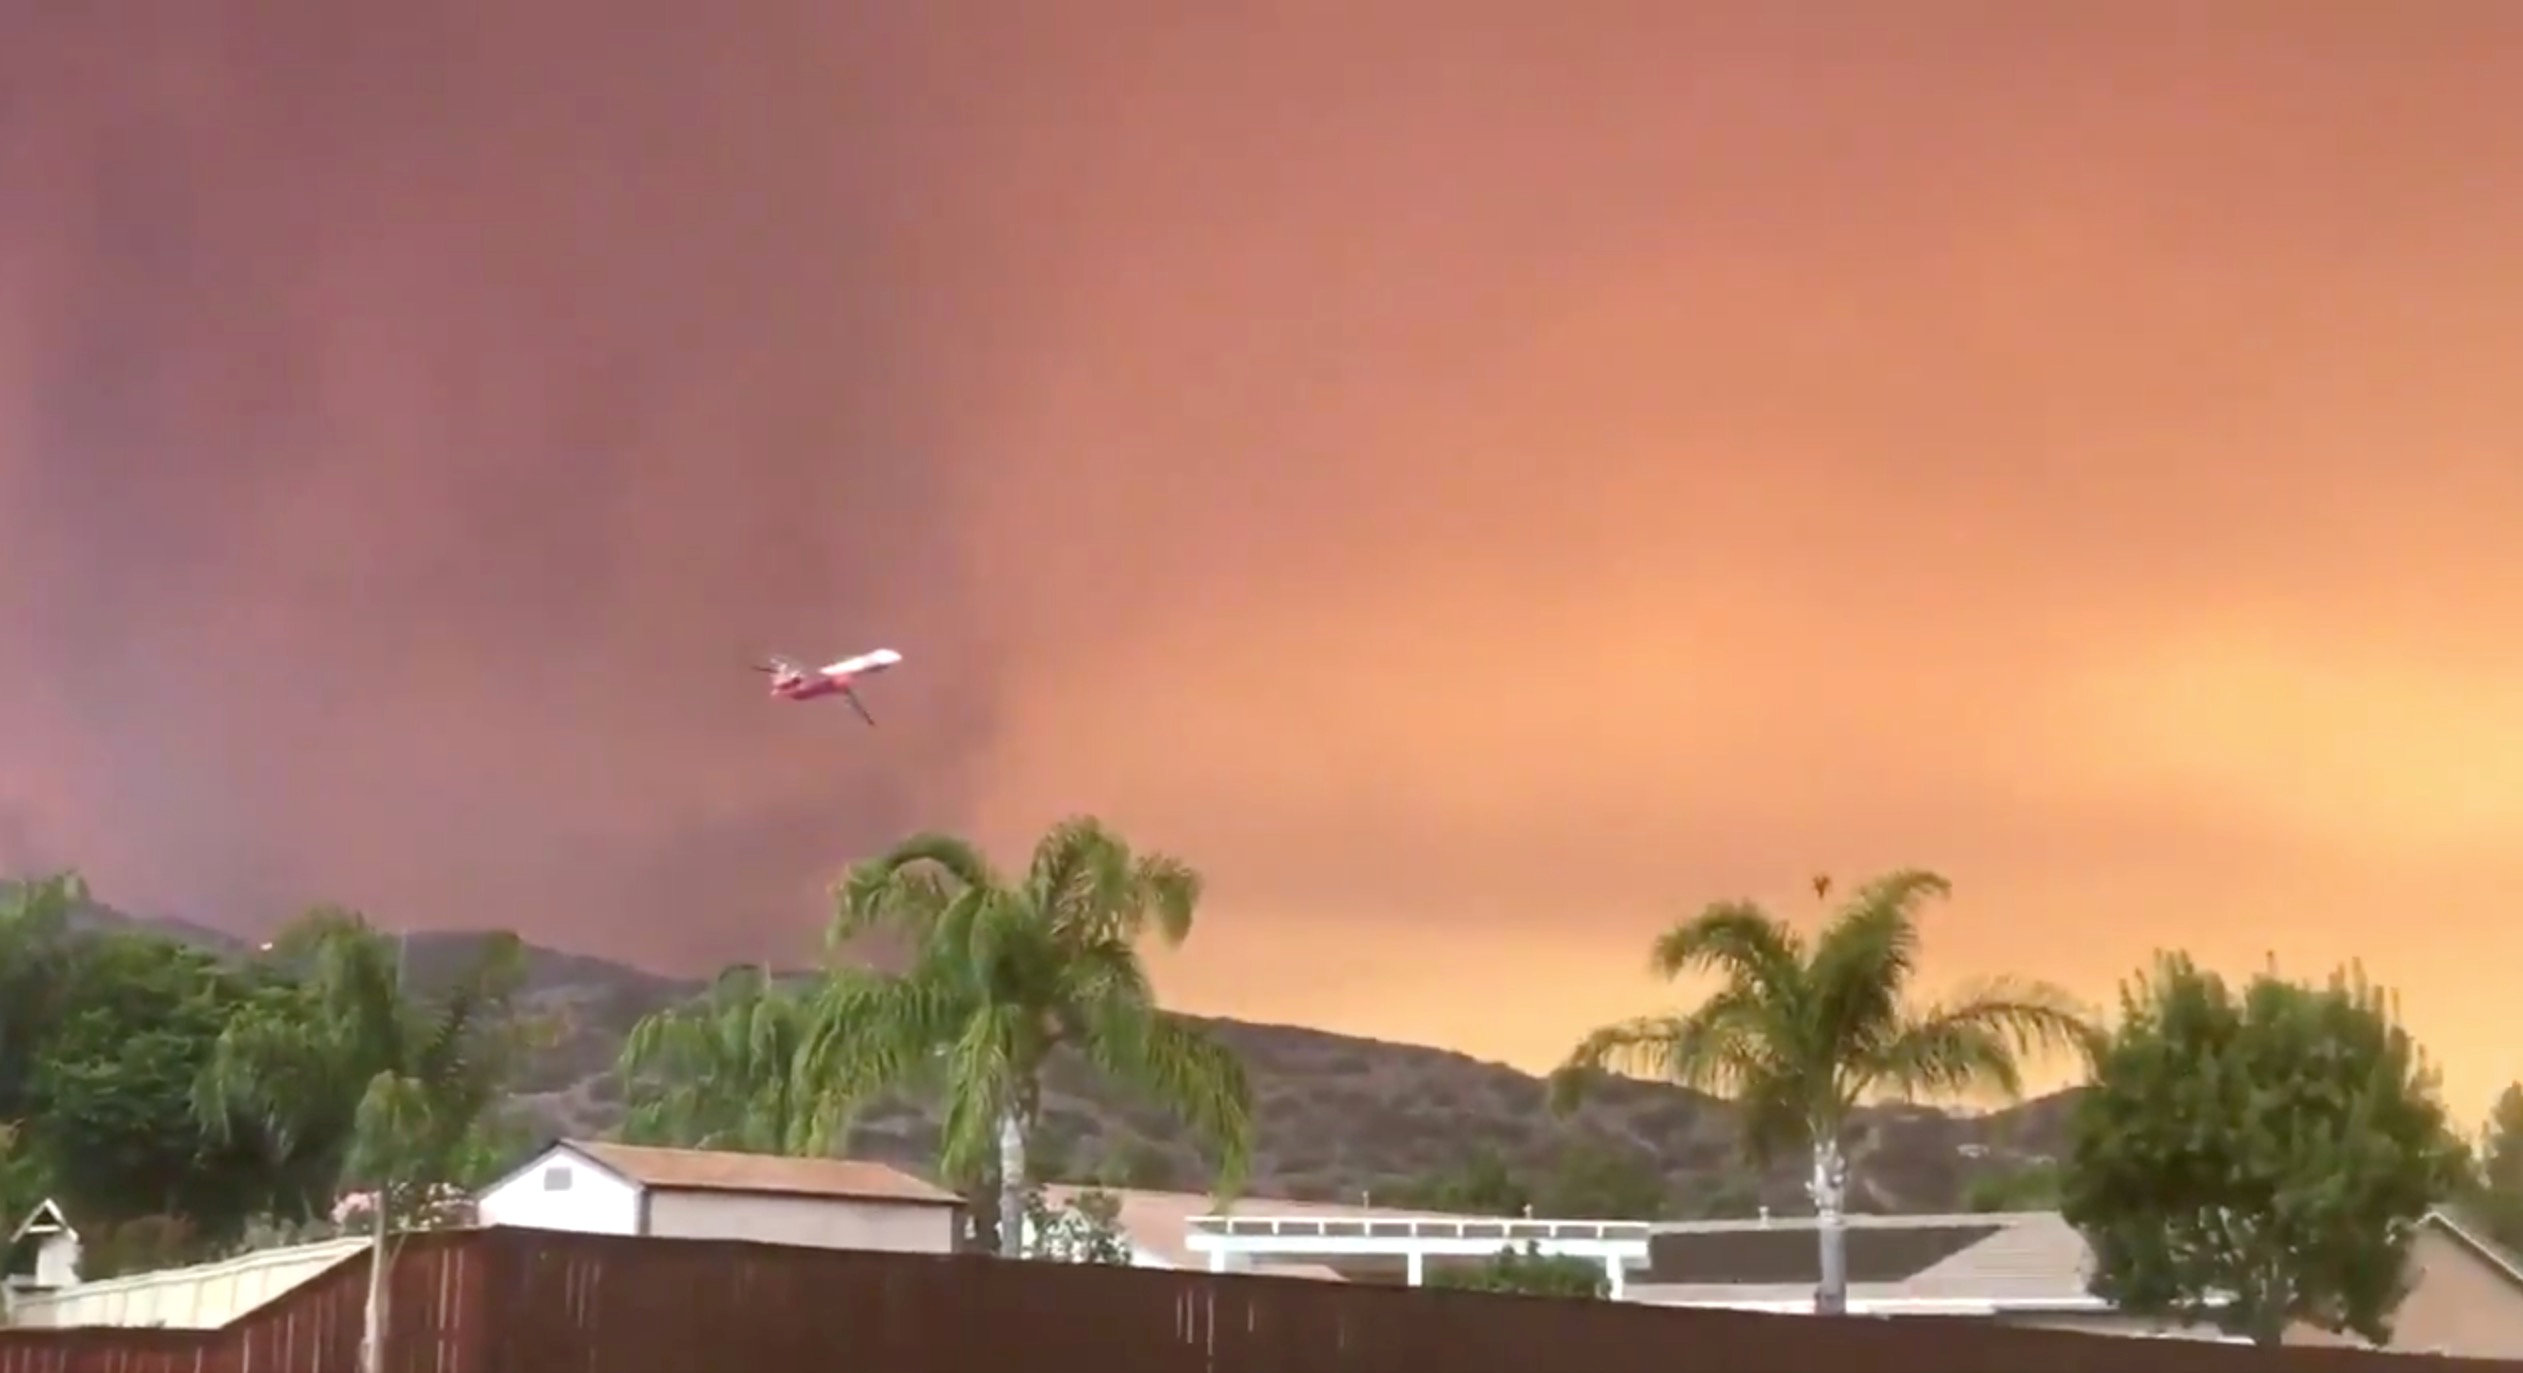 Here's your annual reminder to stop flying drones over wildfires